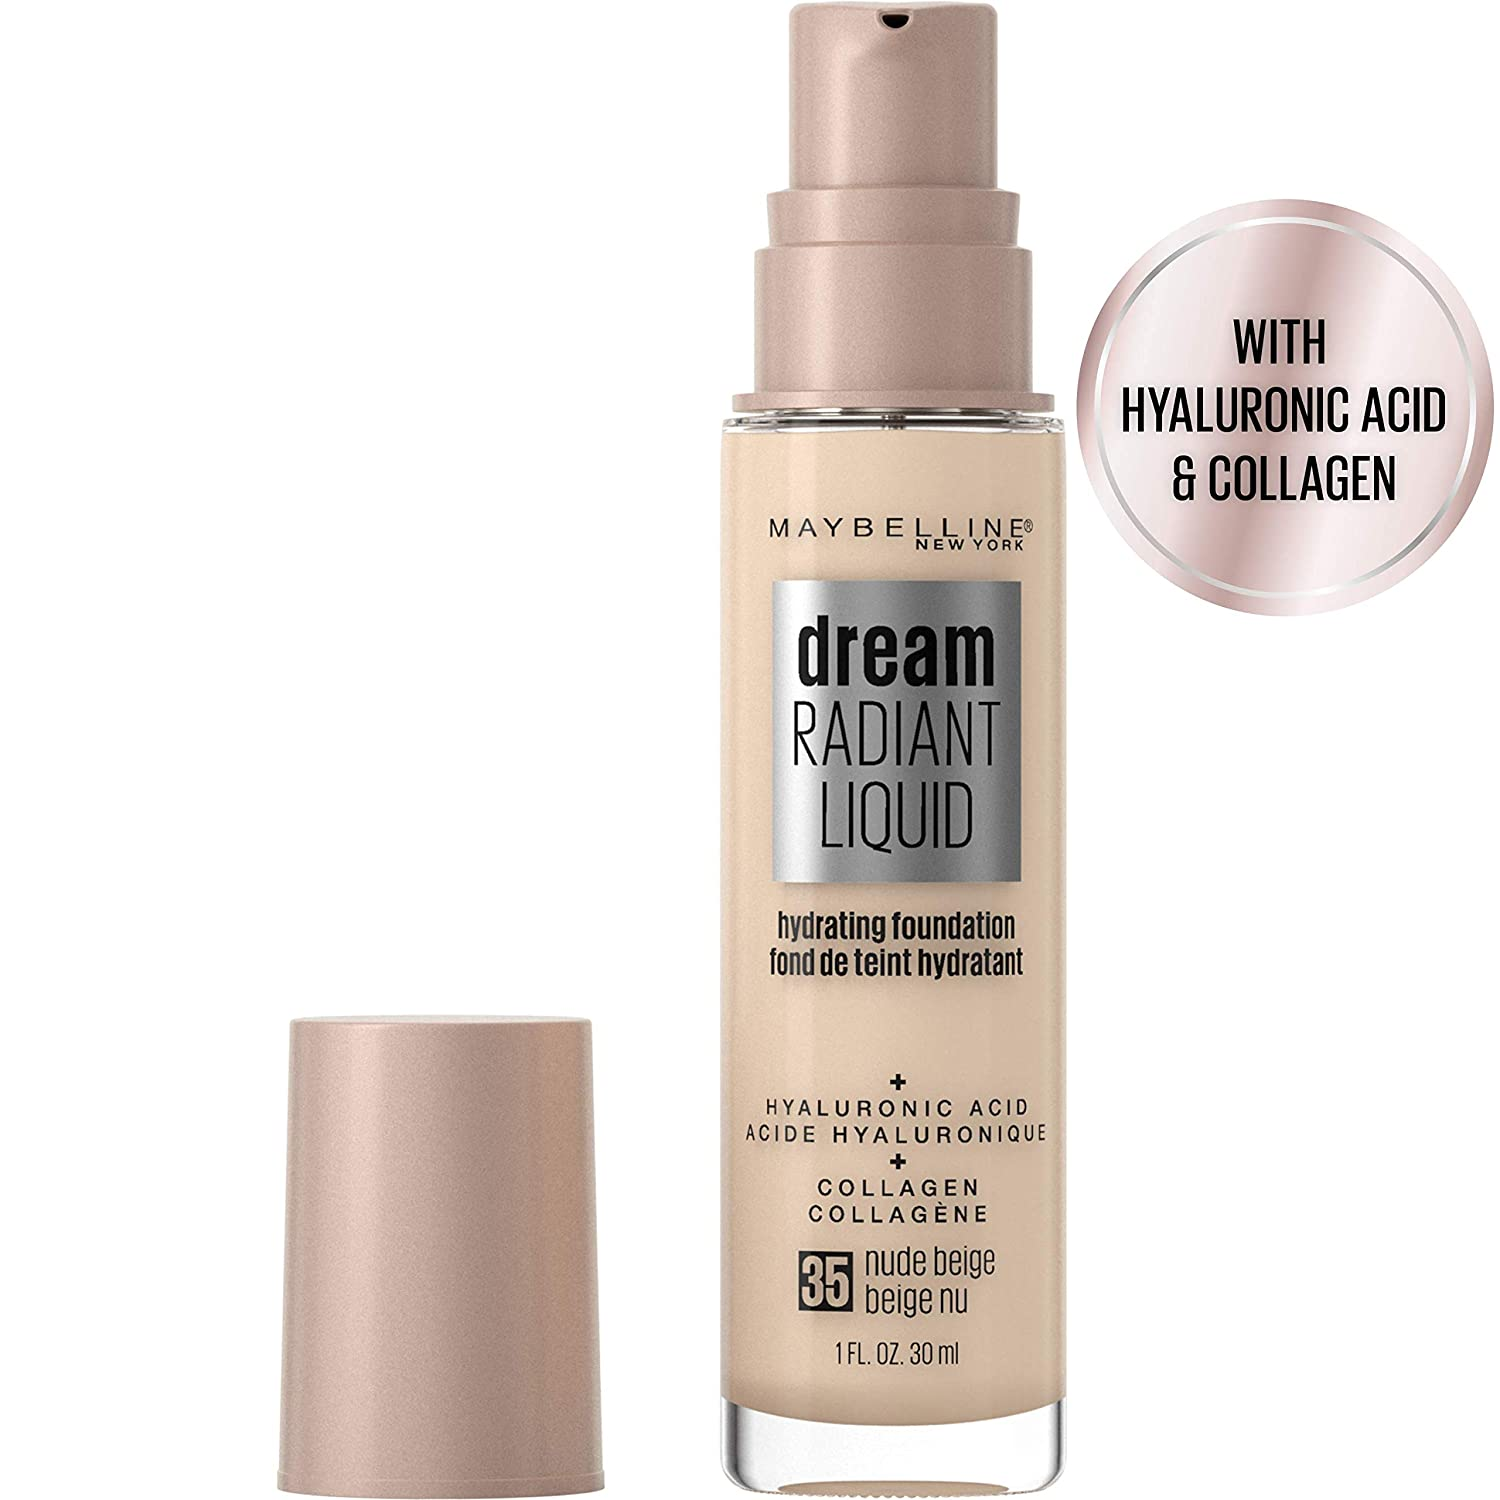 Maybelline Dream Radiant Liquid Medium Coverage Hydrating Makeup, Lightweight Liquid Foundation, Nude Beige, 1 Fl. Oz